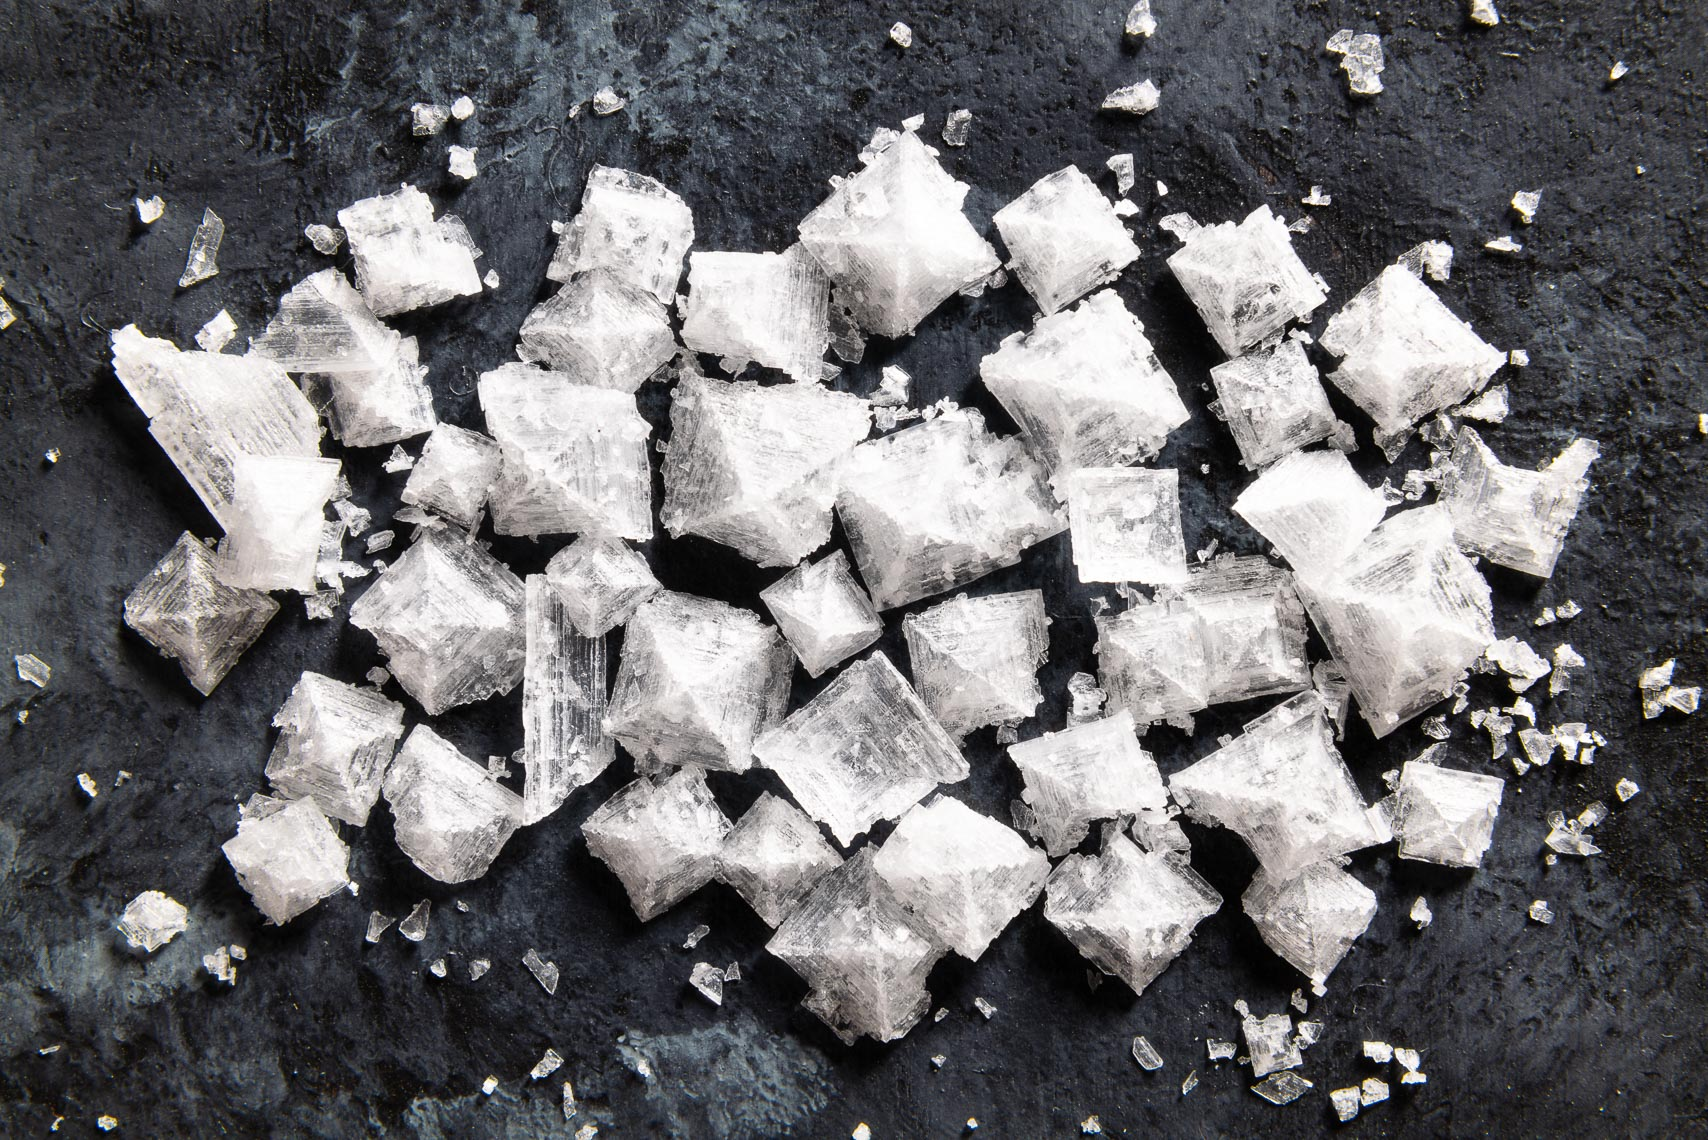 Large Sea Salt Crystals - Food Photographer & Stylist Philadelphia, PA